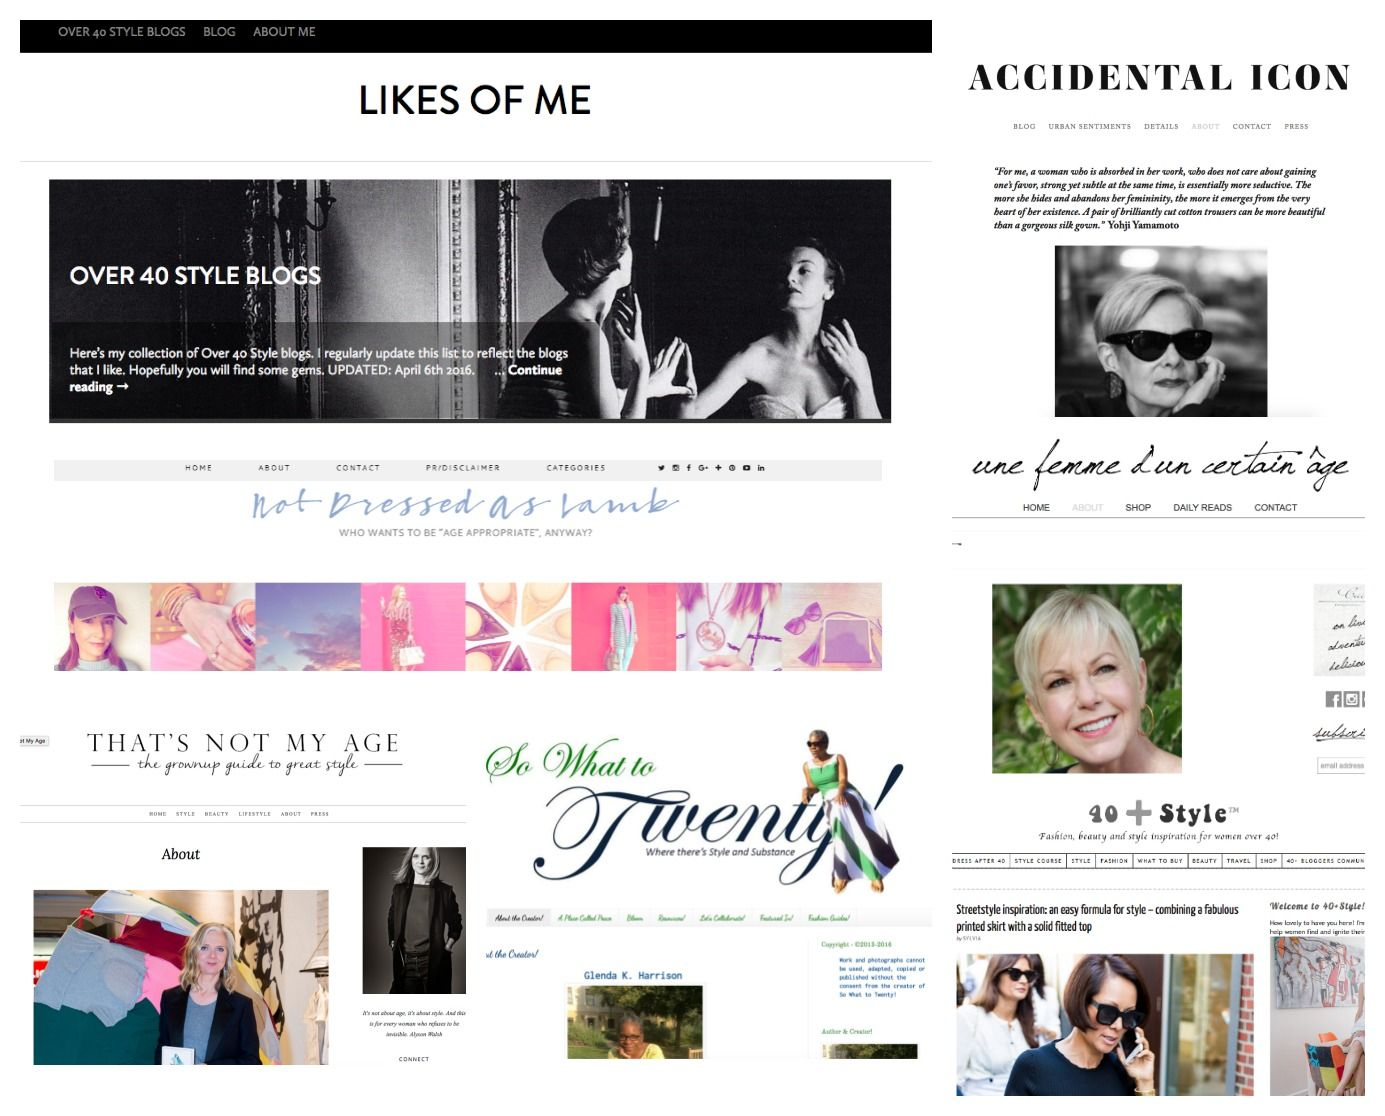 network fashion blog ageless style not only twenty post